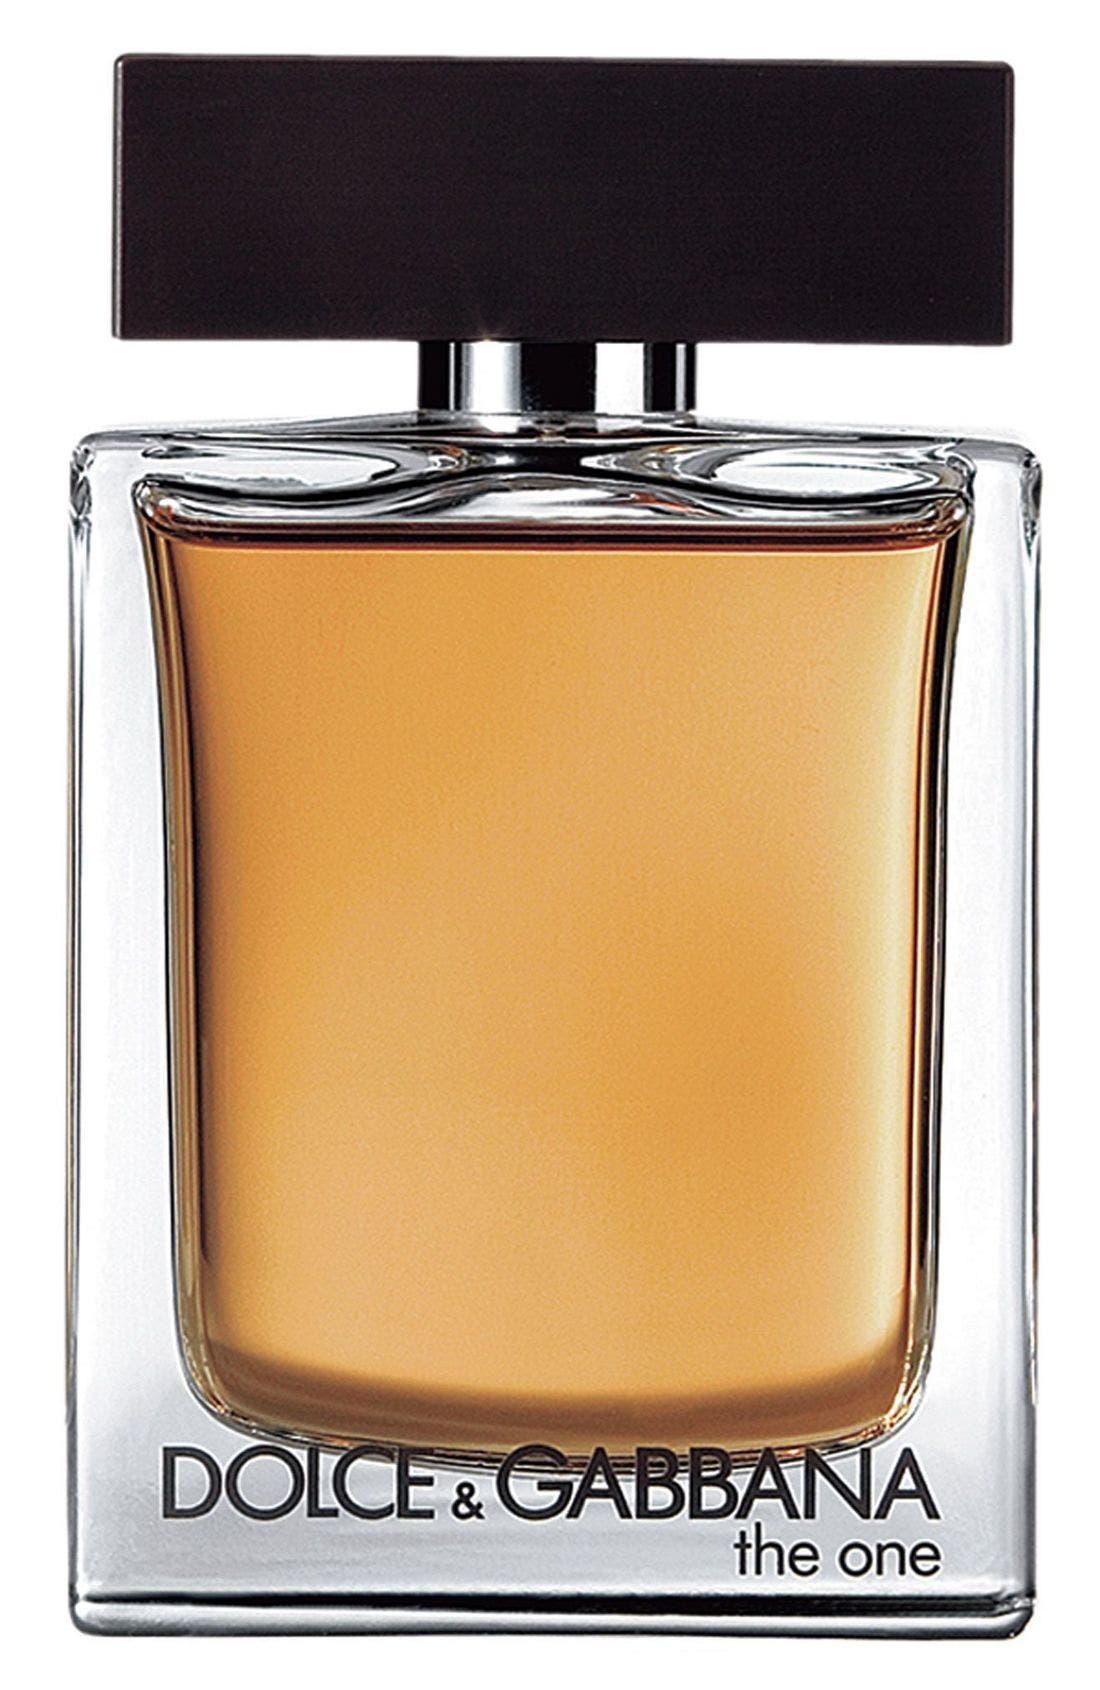 Dolce&Gabbana Beauty 'The One for Men' Eau de Toilette Spray